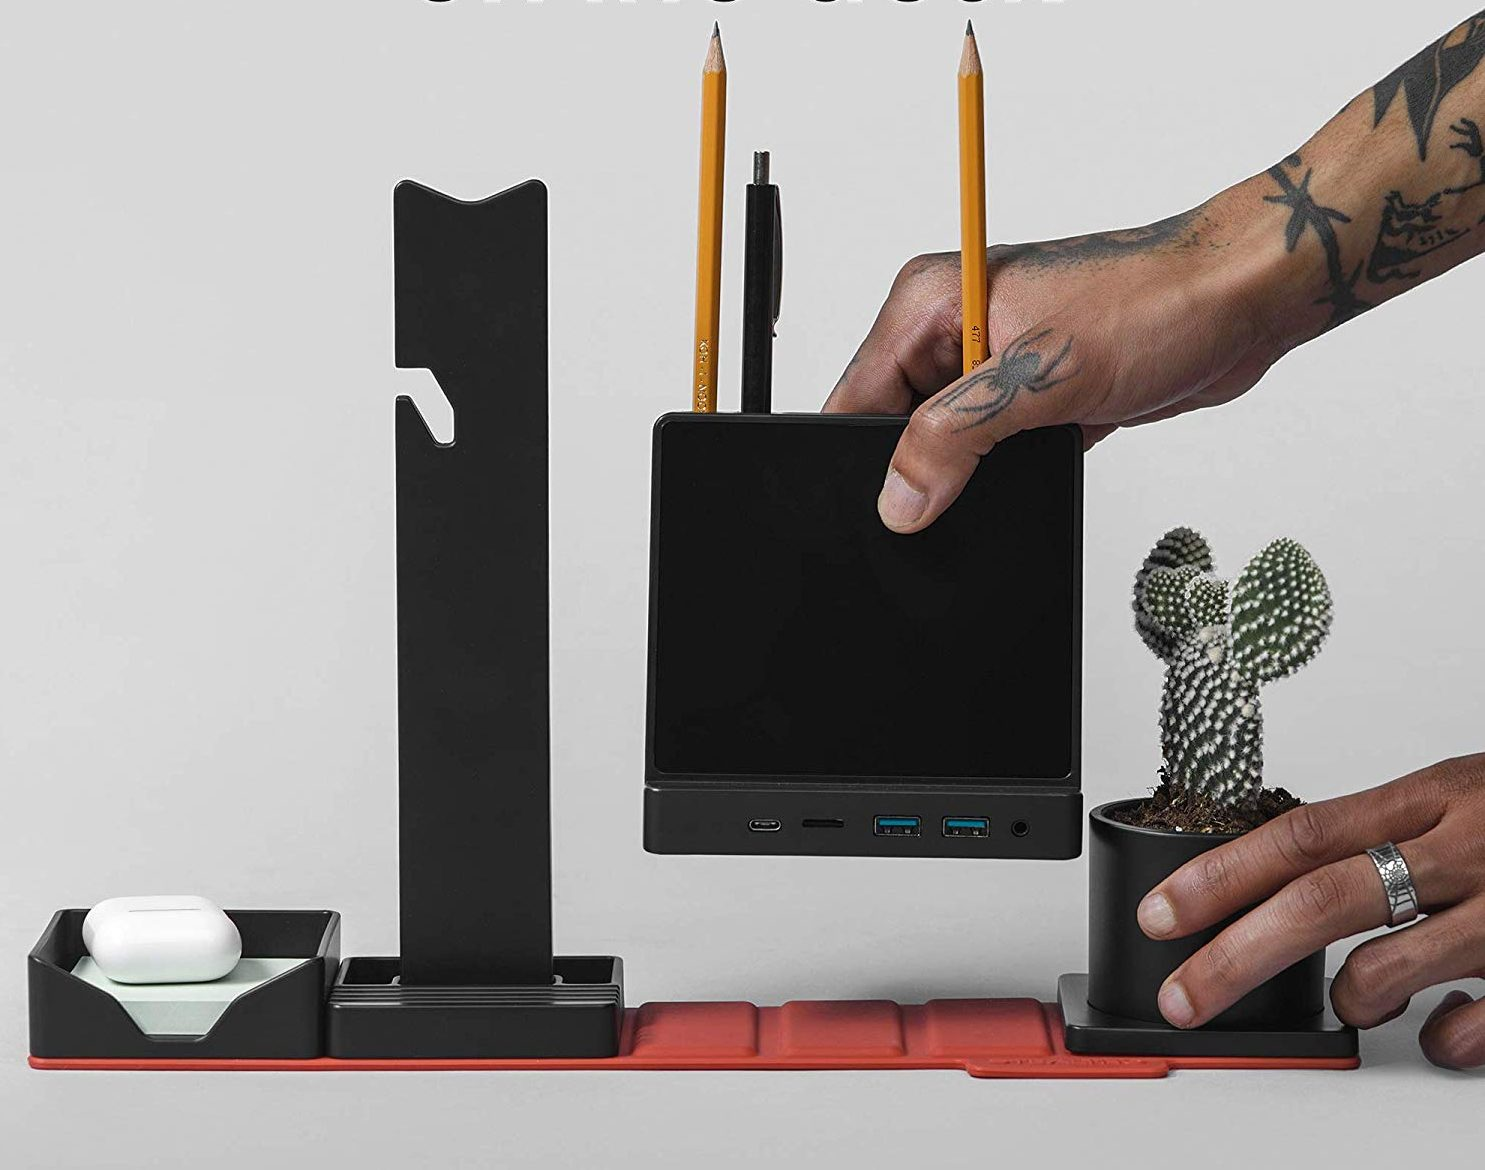 Combo Office HUB STEALTHO Desk Organizer